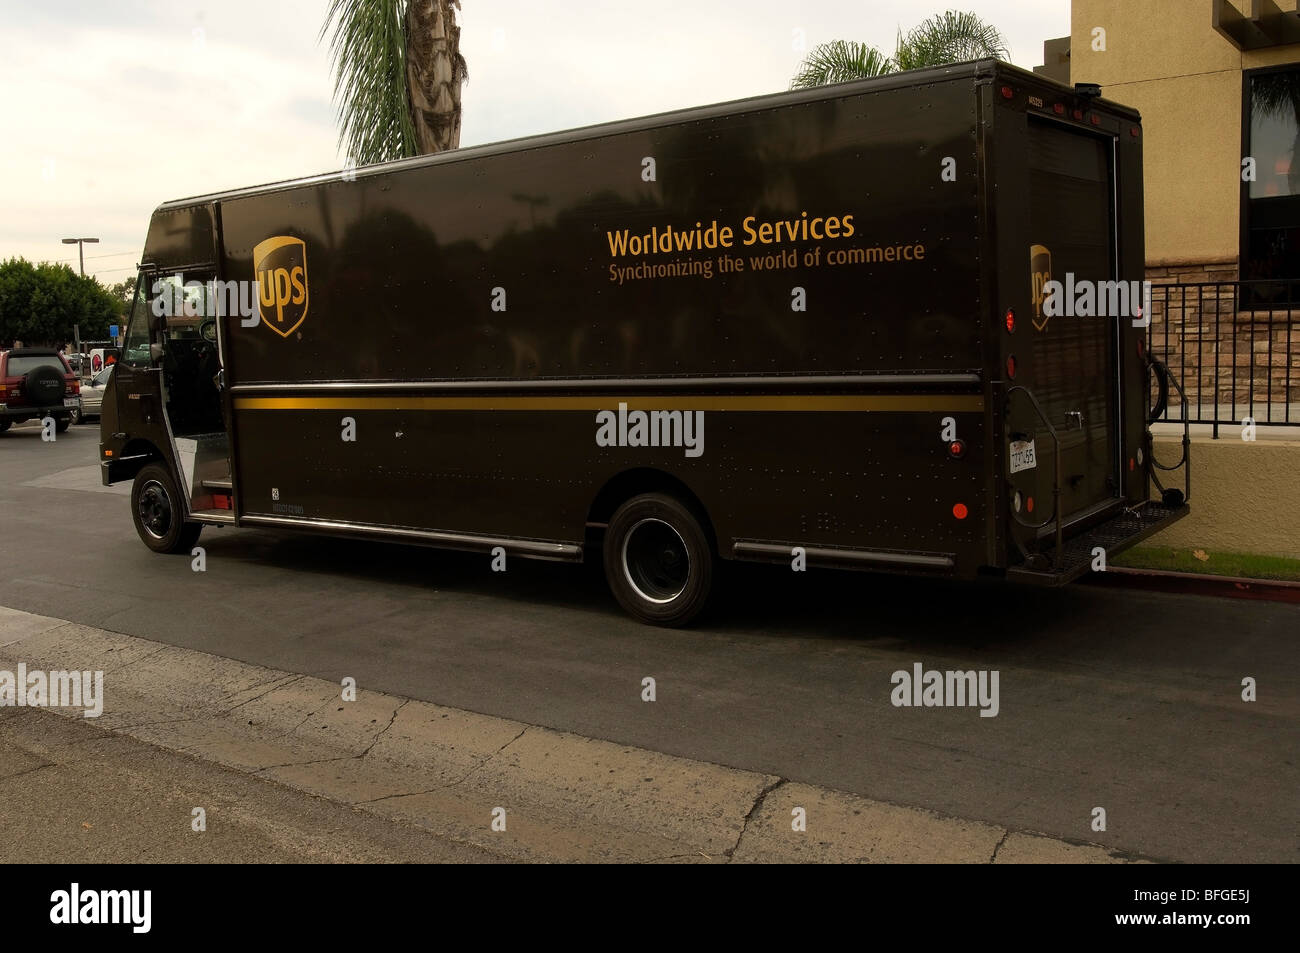 Ups Truck Stock Photos & Ups Truck Stock Images - Alamy